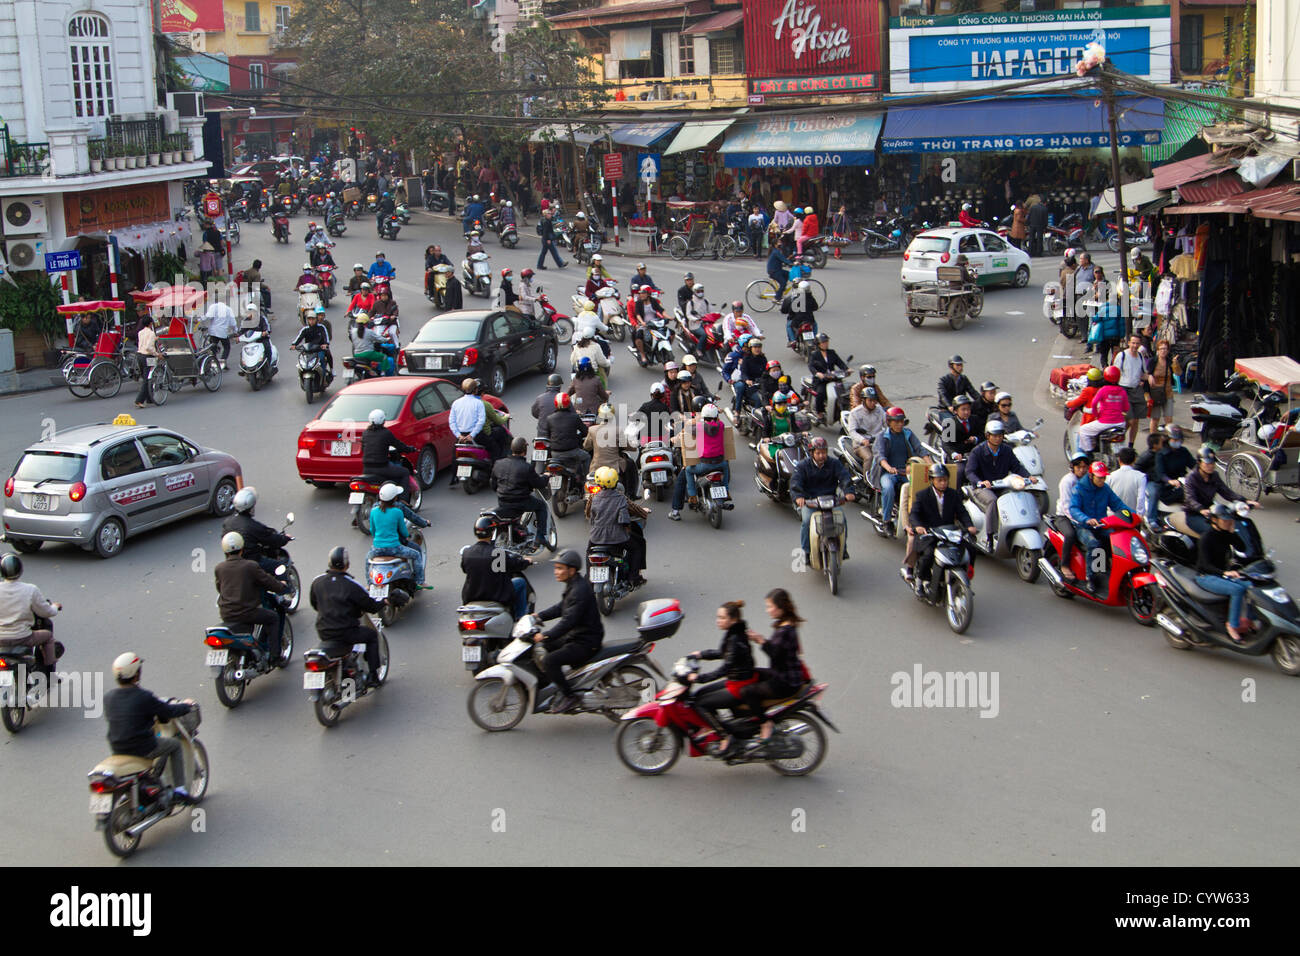 Traffic chaos at a busy intersection in the Old Quarter of Hanoi, Vietnam. - Stock Image